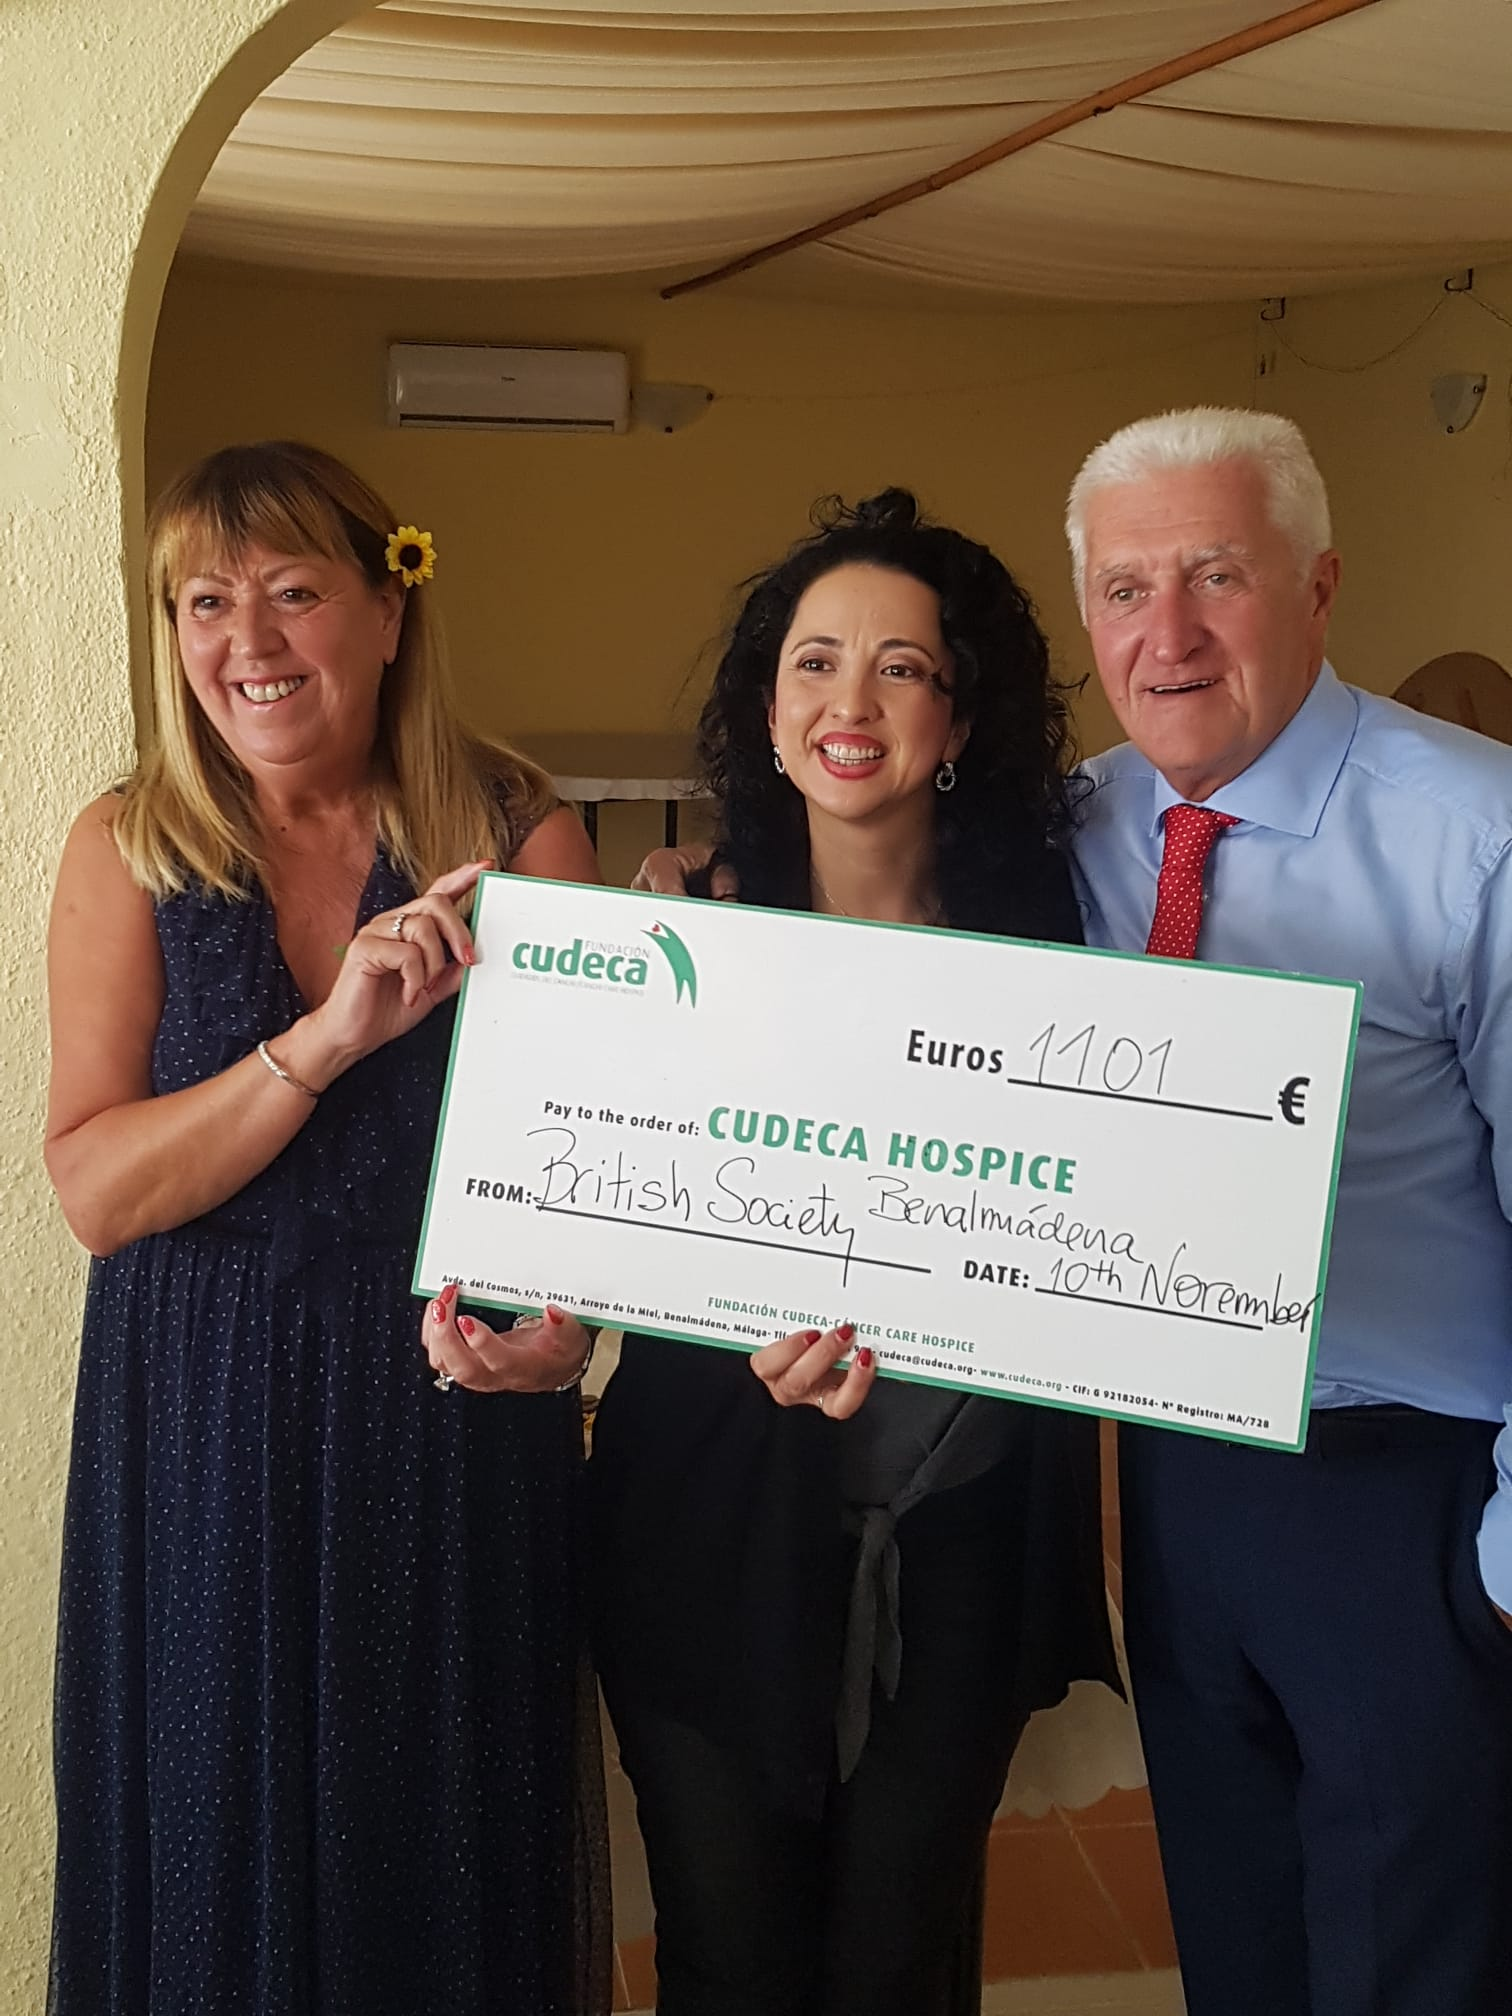 British Society of Benalmadena Donation